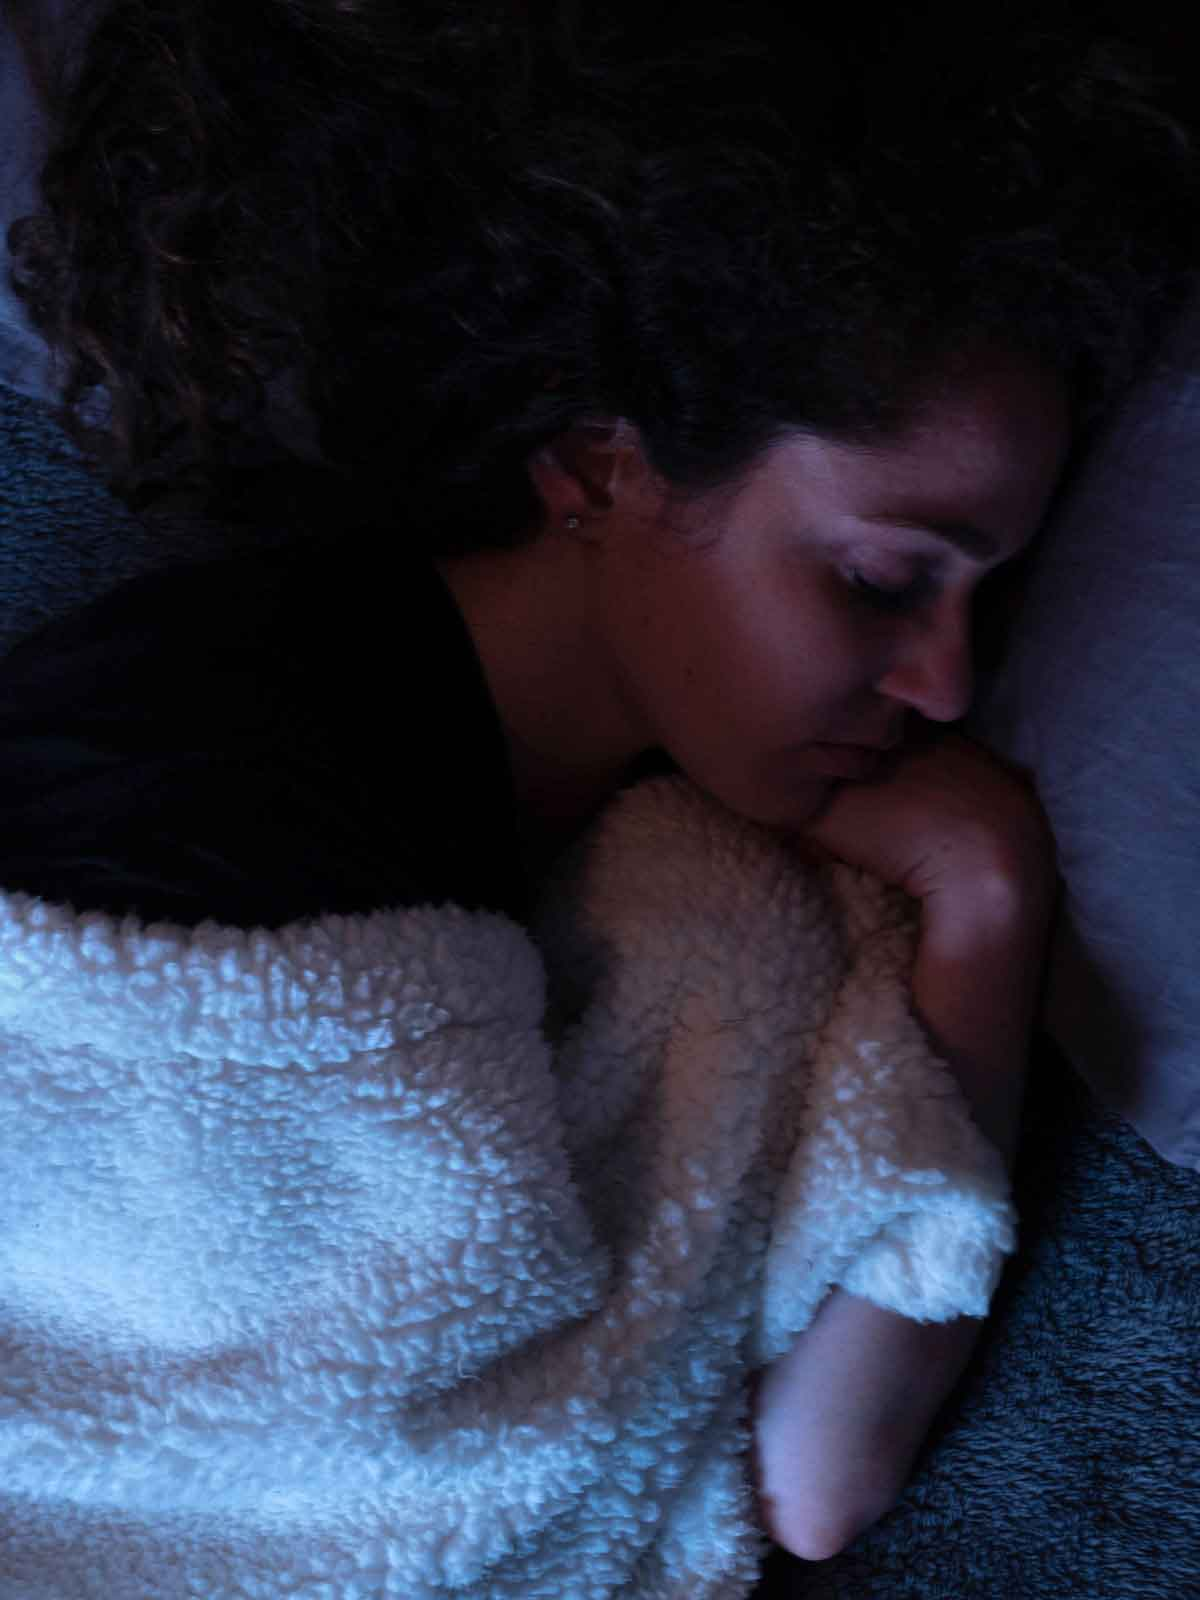 Woman sleeping with cozy white blanket to support her endocannabinoid system